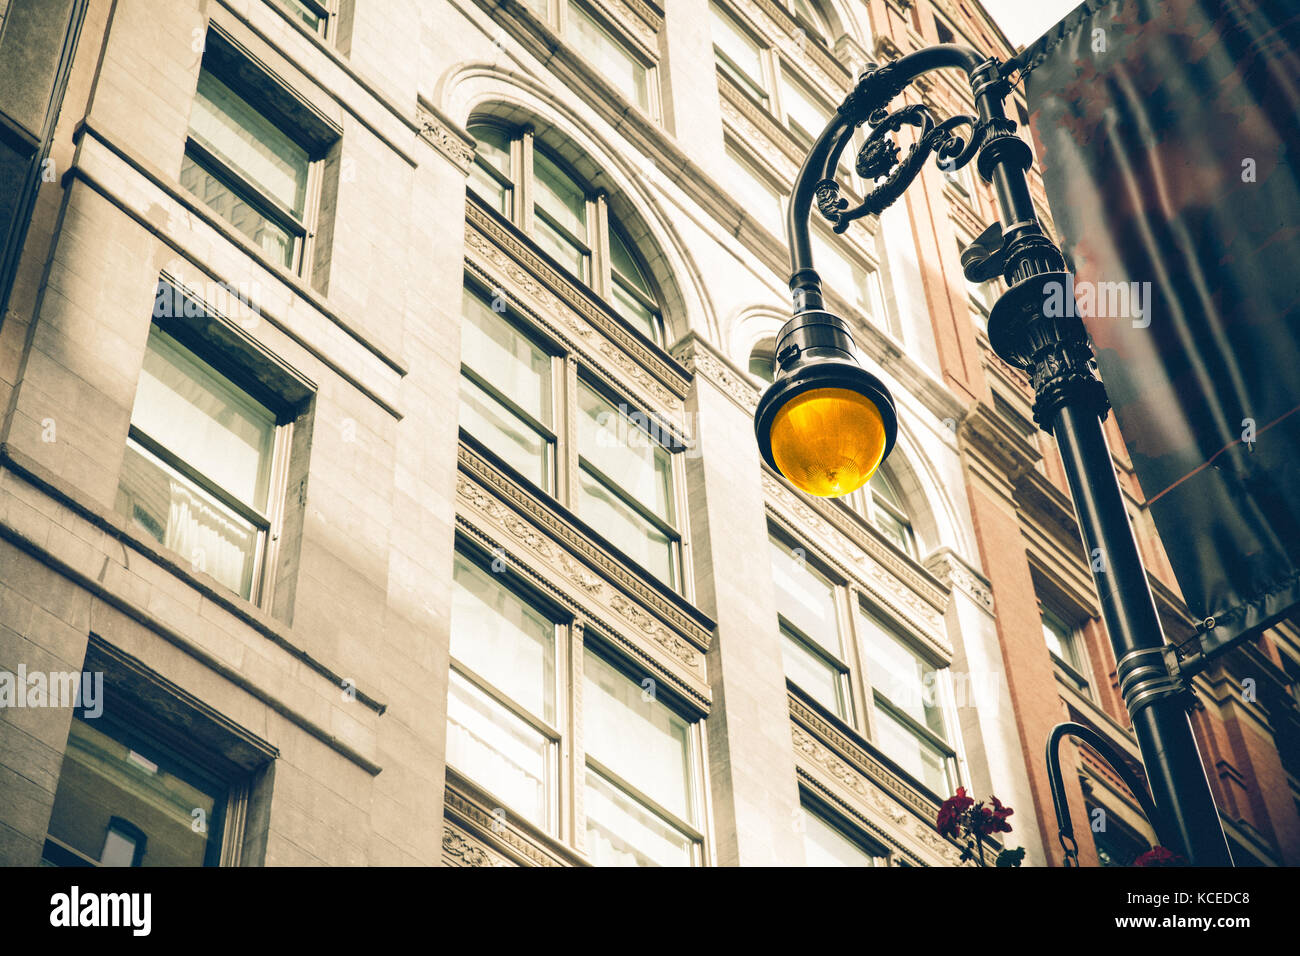 Vintage style illuminated streetlamp with New York City apartment buildings in the background. - Stock Image